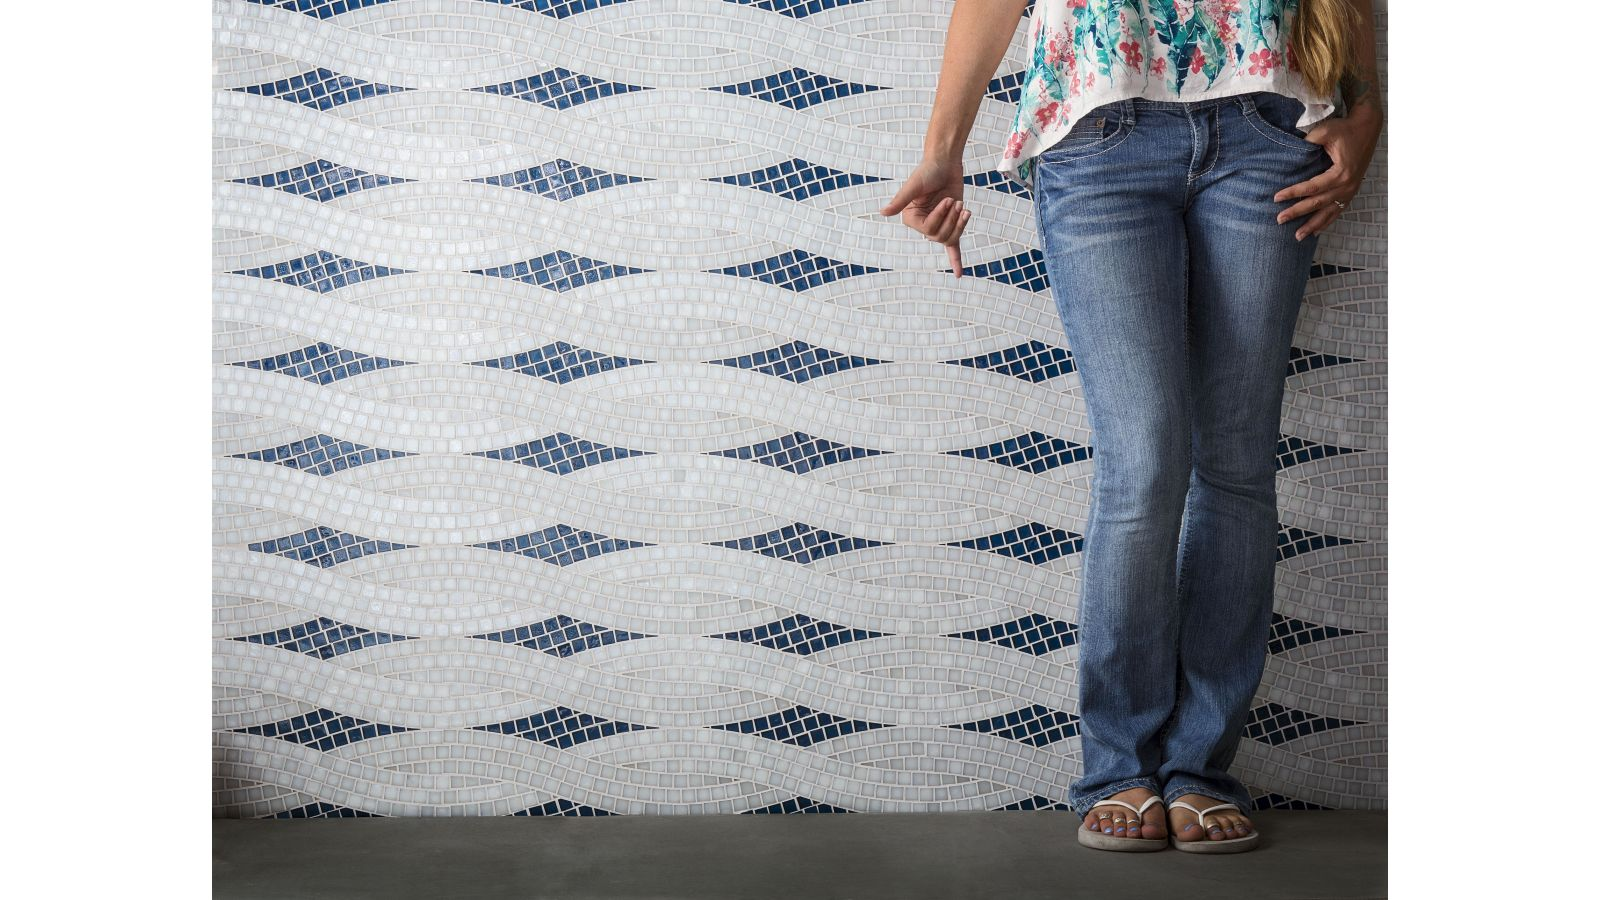 Oceanside Glasstile - New Pattern Muse Collection - Braid